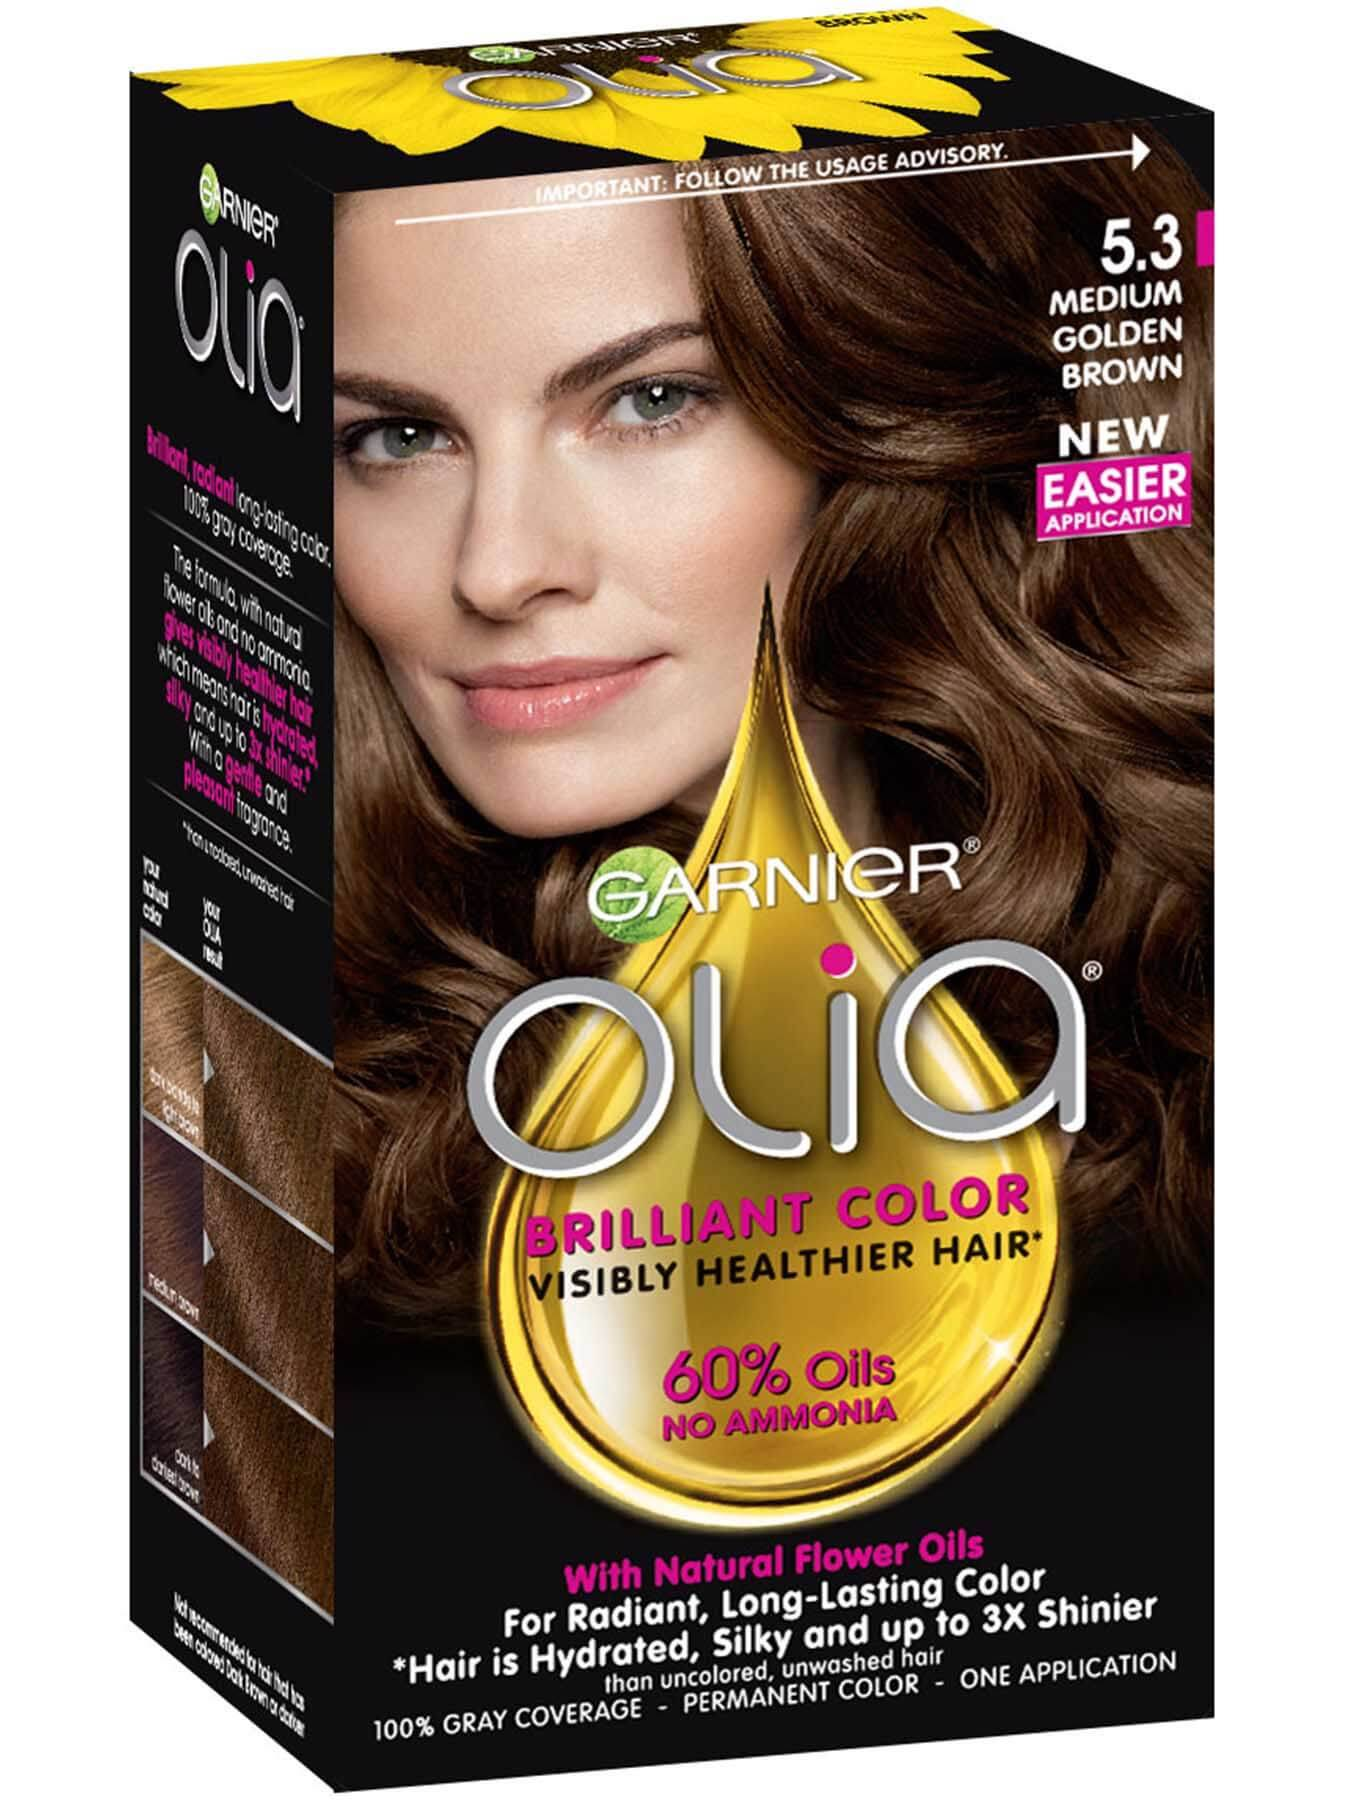 Olia Ammonia Free Permanent Hair Color Med Golden